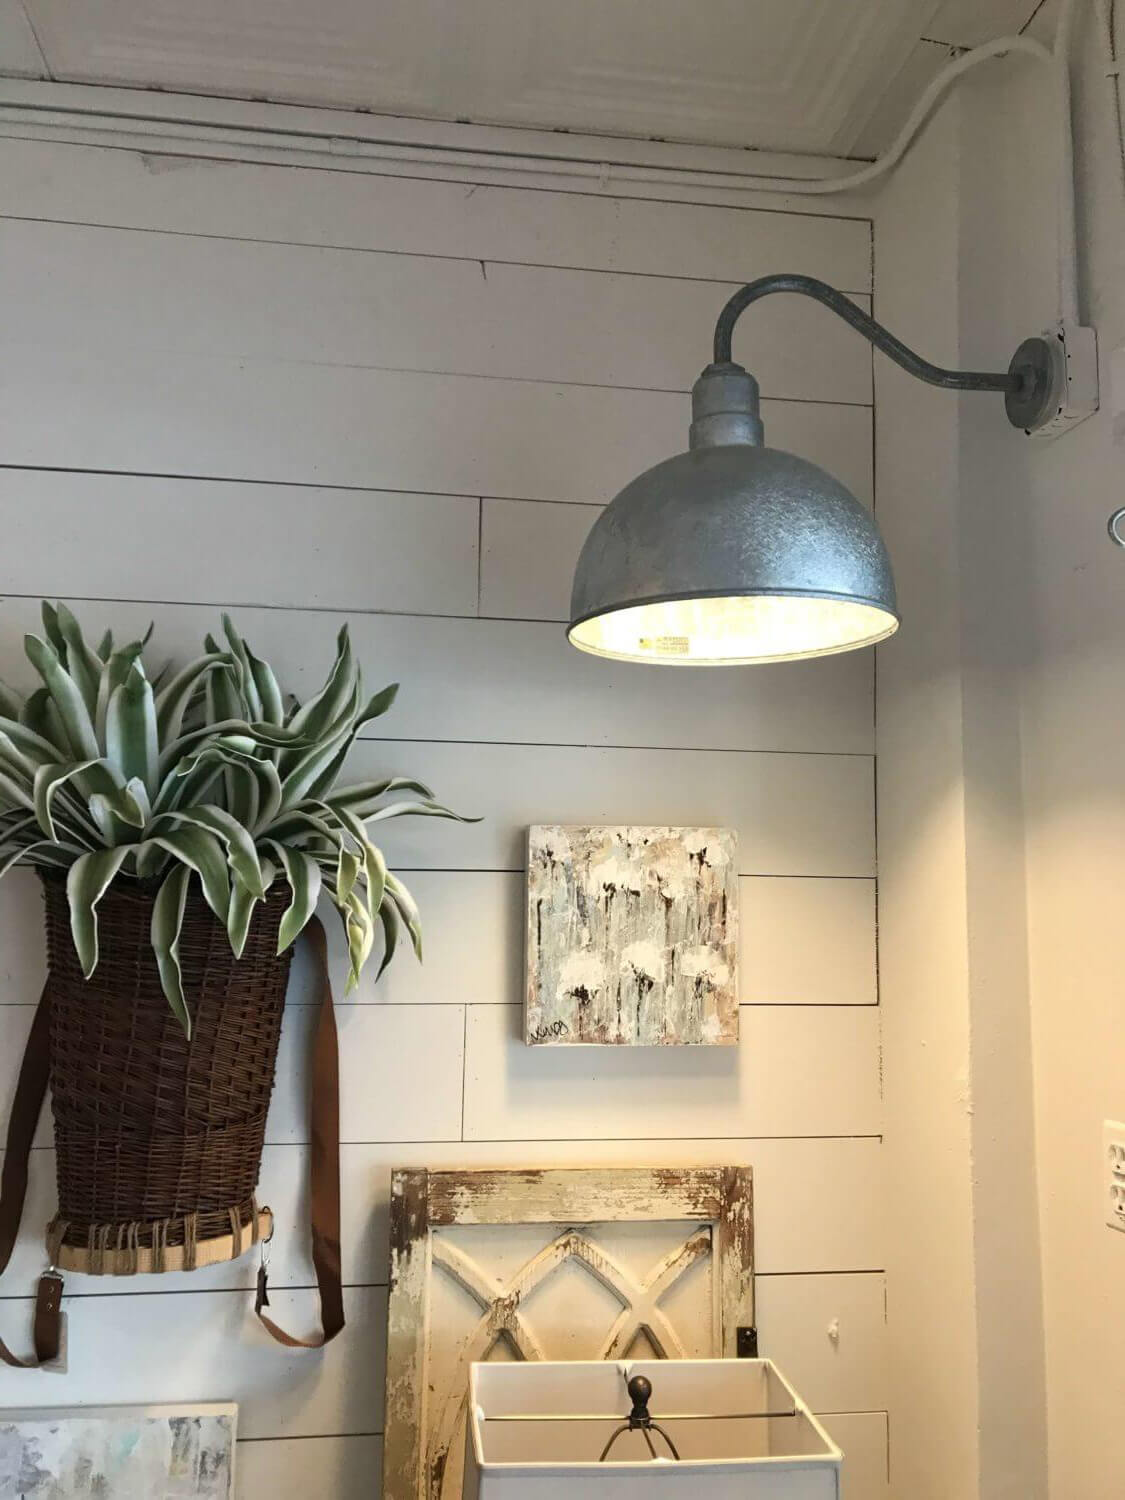 The Hollywood Bowl Wall Mounted Light Fixture in Galvanized by Steel Lighting Co.